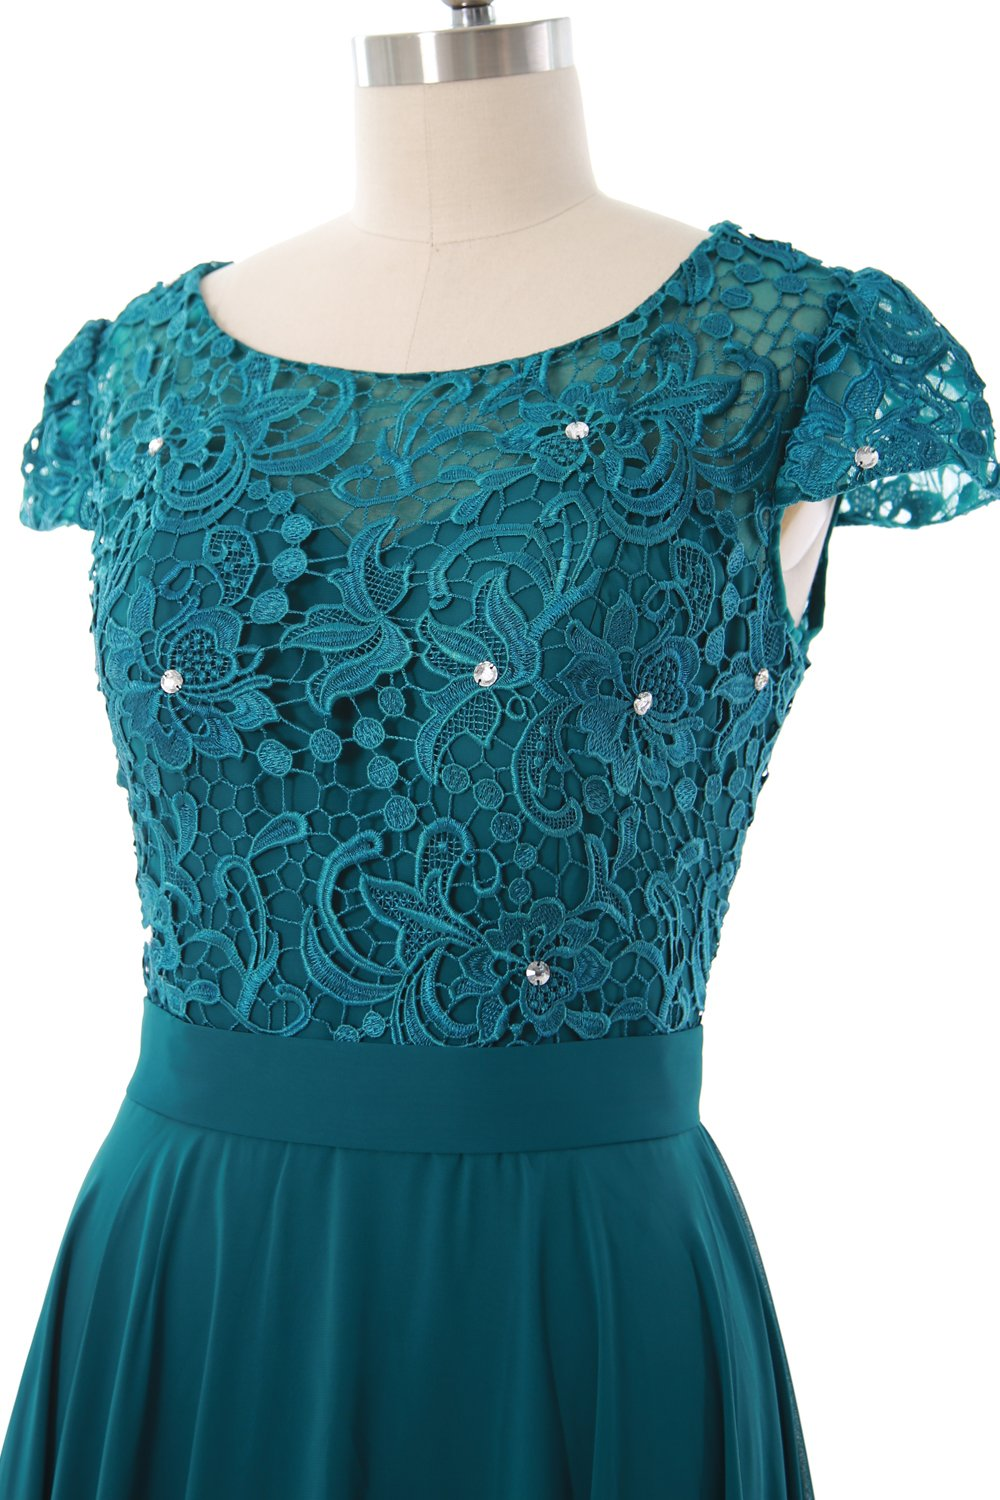 MACloth Women Cap Sleeve Mother of The Bride Dress Lace Short Formal Party Gown (24w, Amethyst) by MACloth (Image #3)